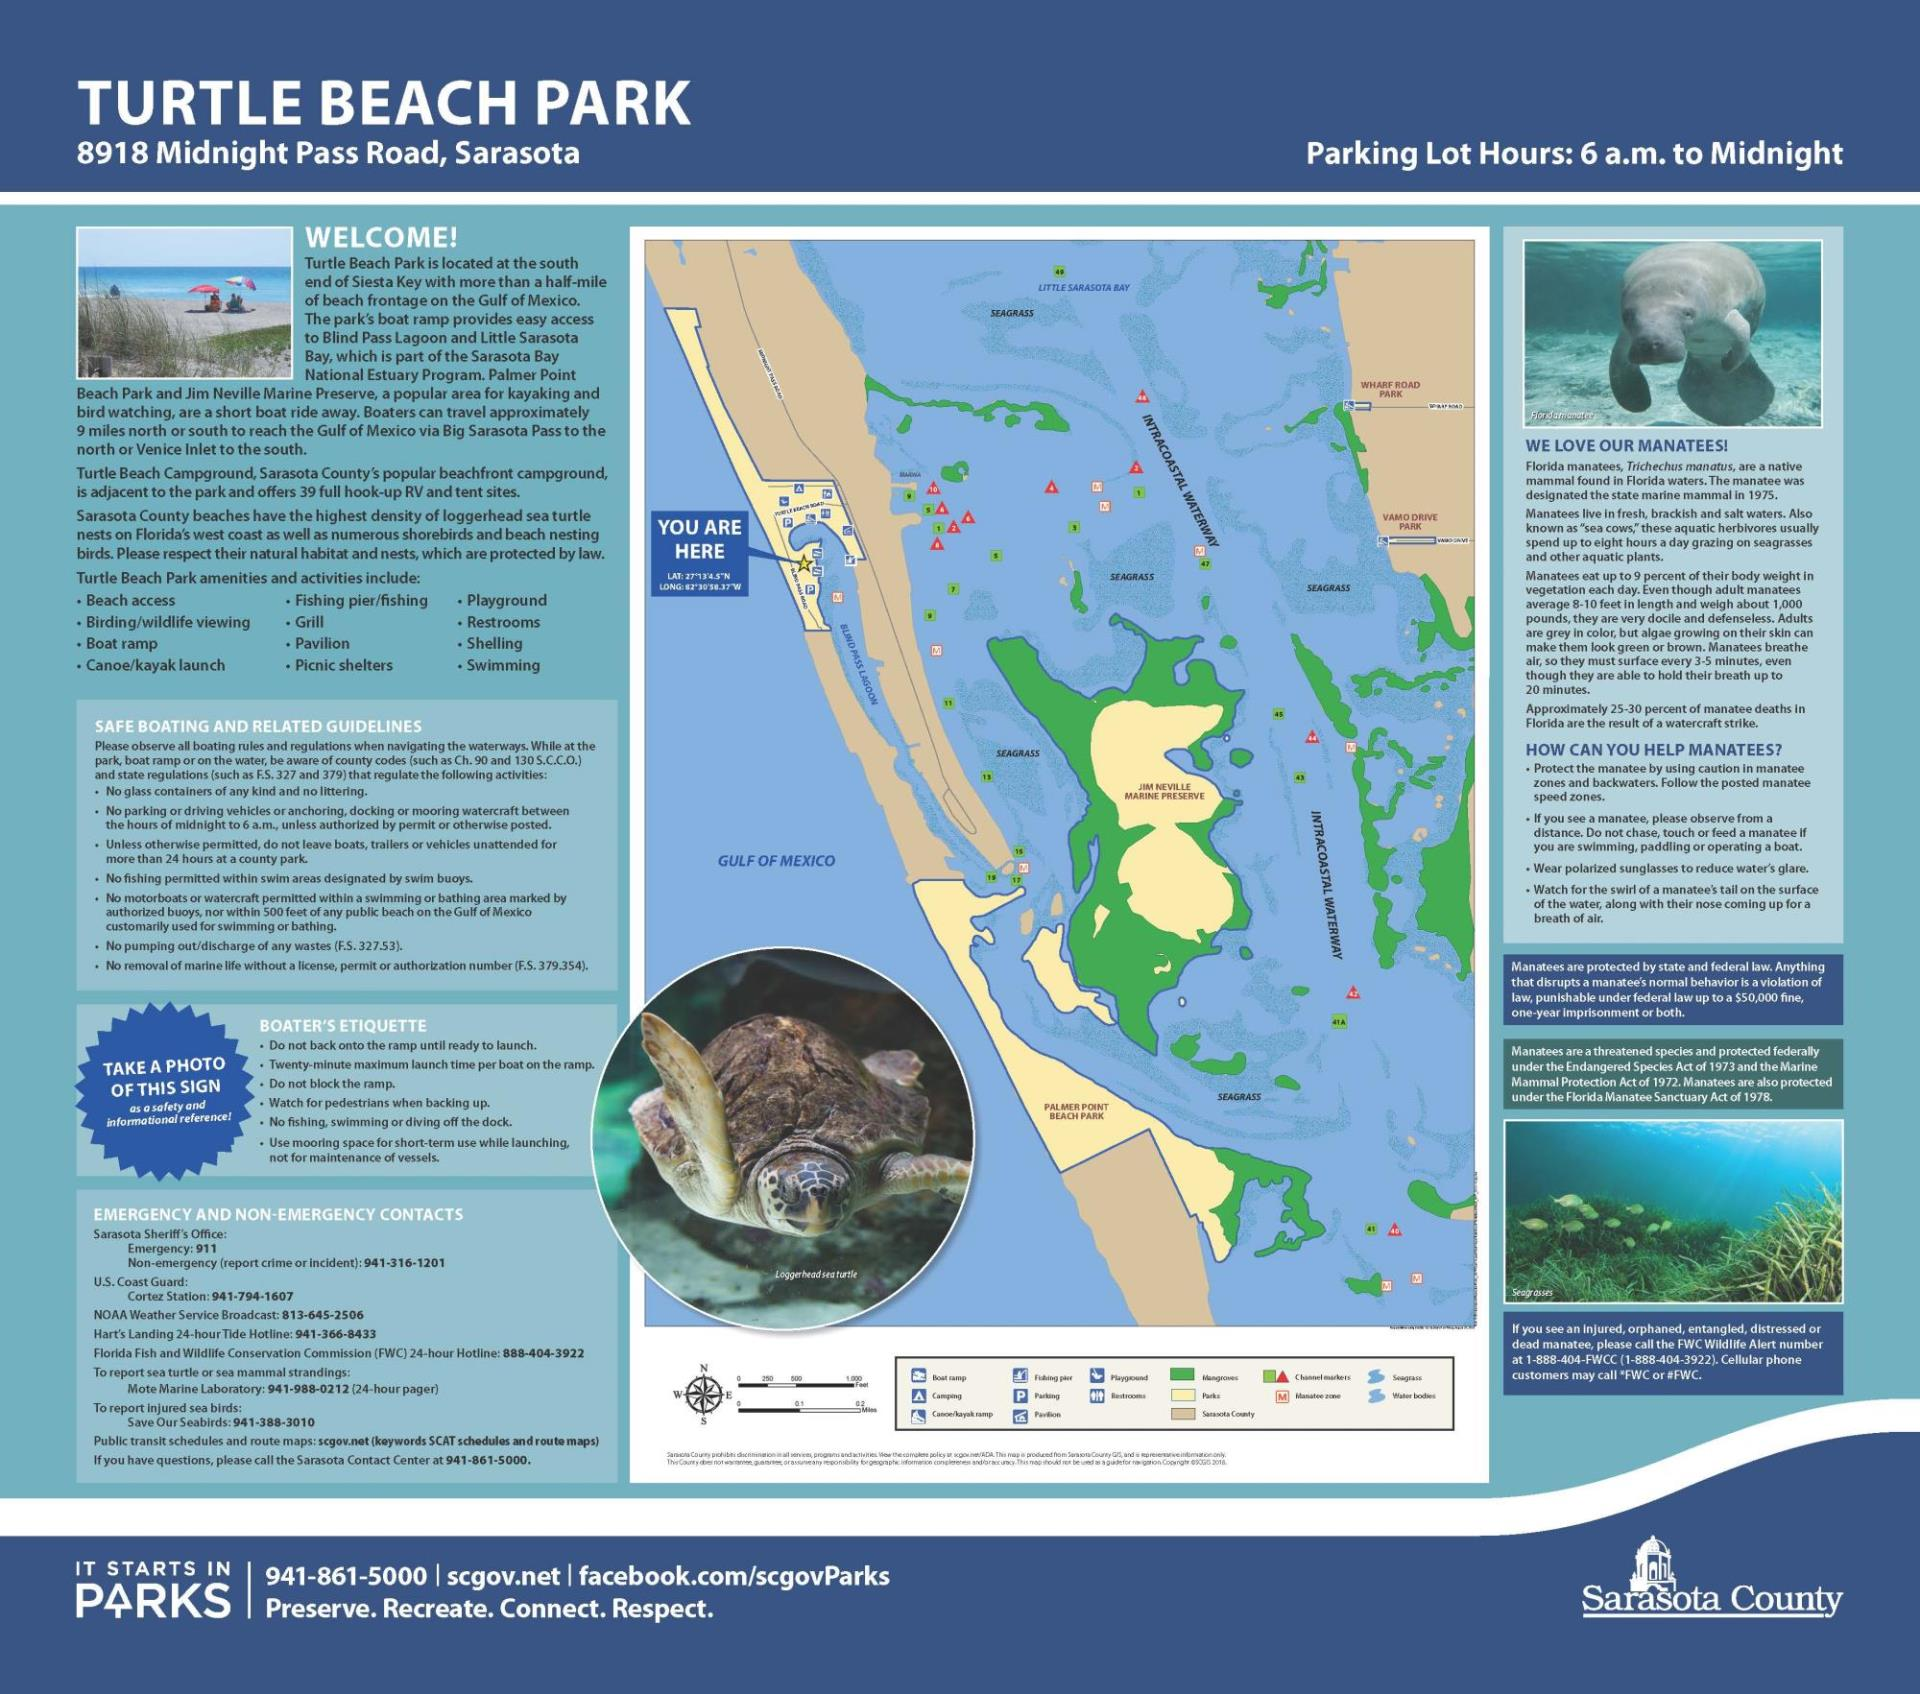 Turtle Beach Boat Ramp Kiosk__6-24-19_WEB